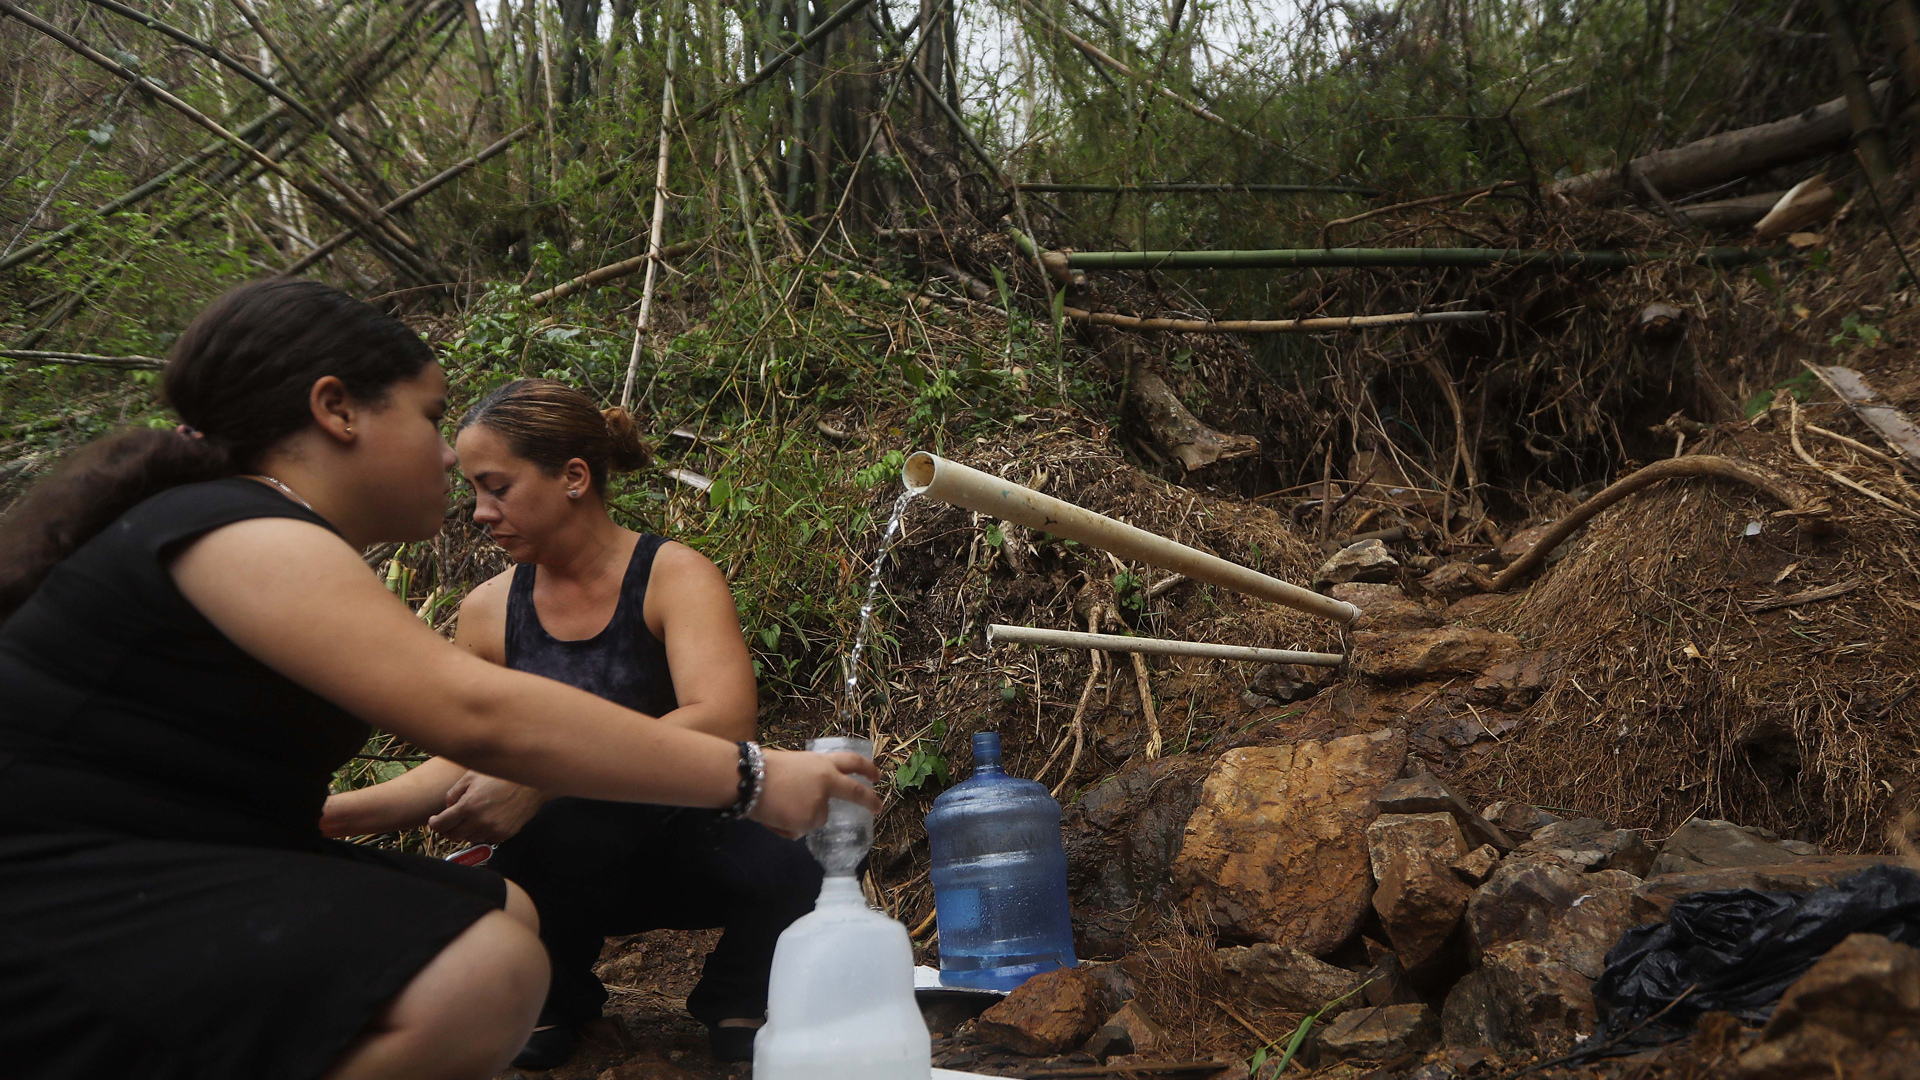 People whose homes no longer have running water fill jugs with spring water over two weeks after Hurricane Maria hit the island, on Oct. 7, 2017, in Naranjito, Puerto Rico. (Credit: Mario Tama/Getty Images)